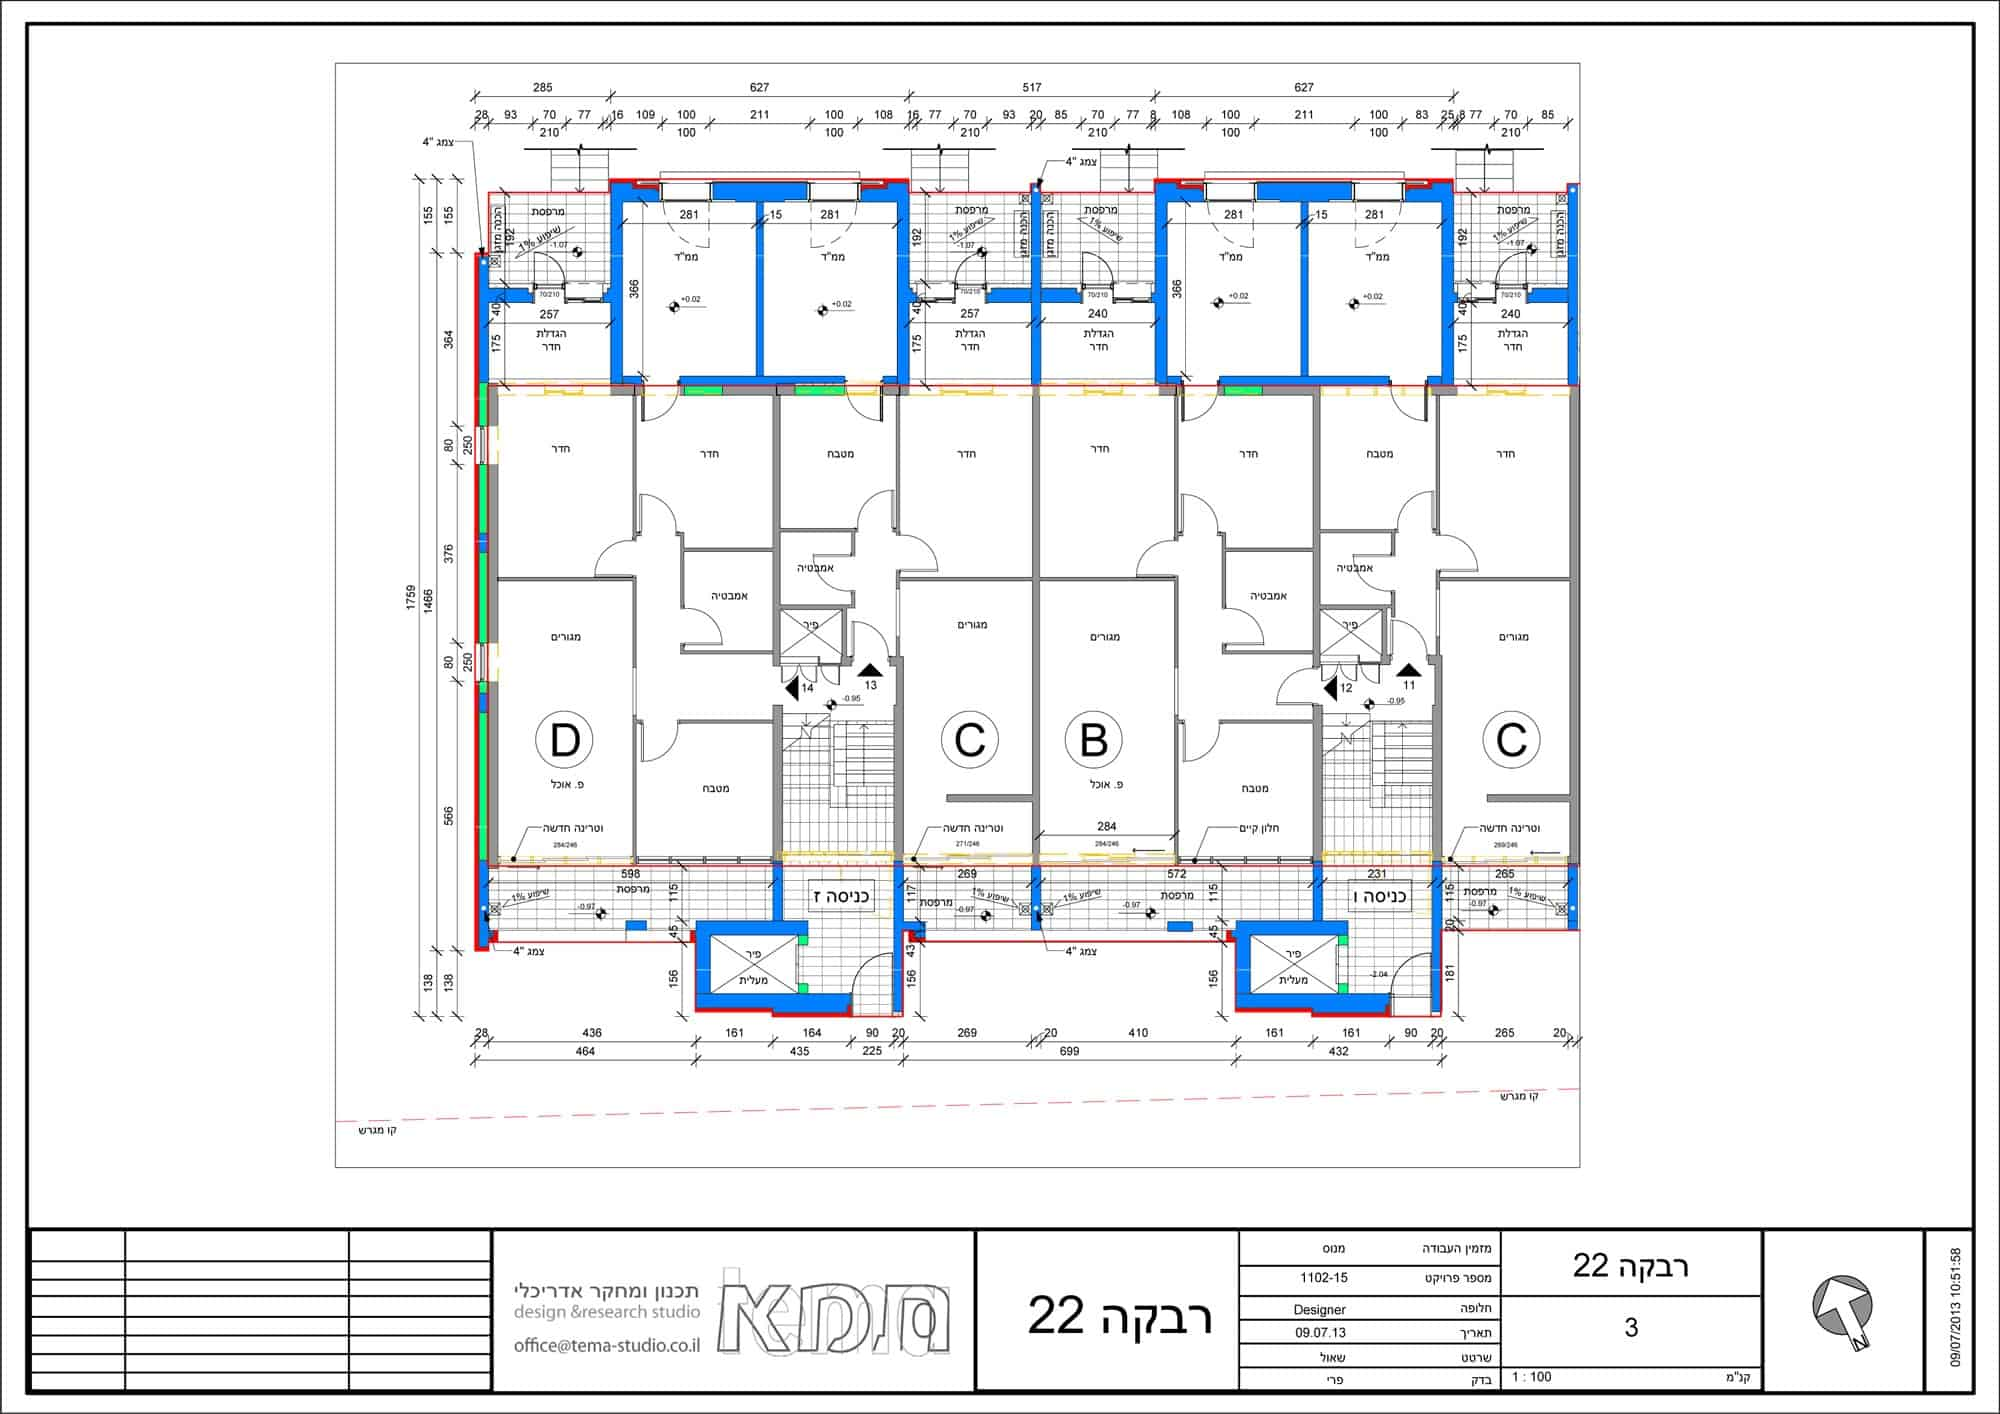 Rivka 22, Jerusalem – Typical floor plan, entrances F-G